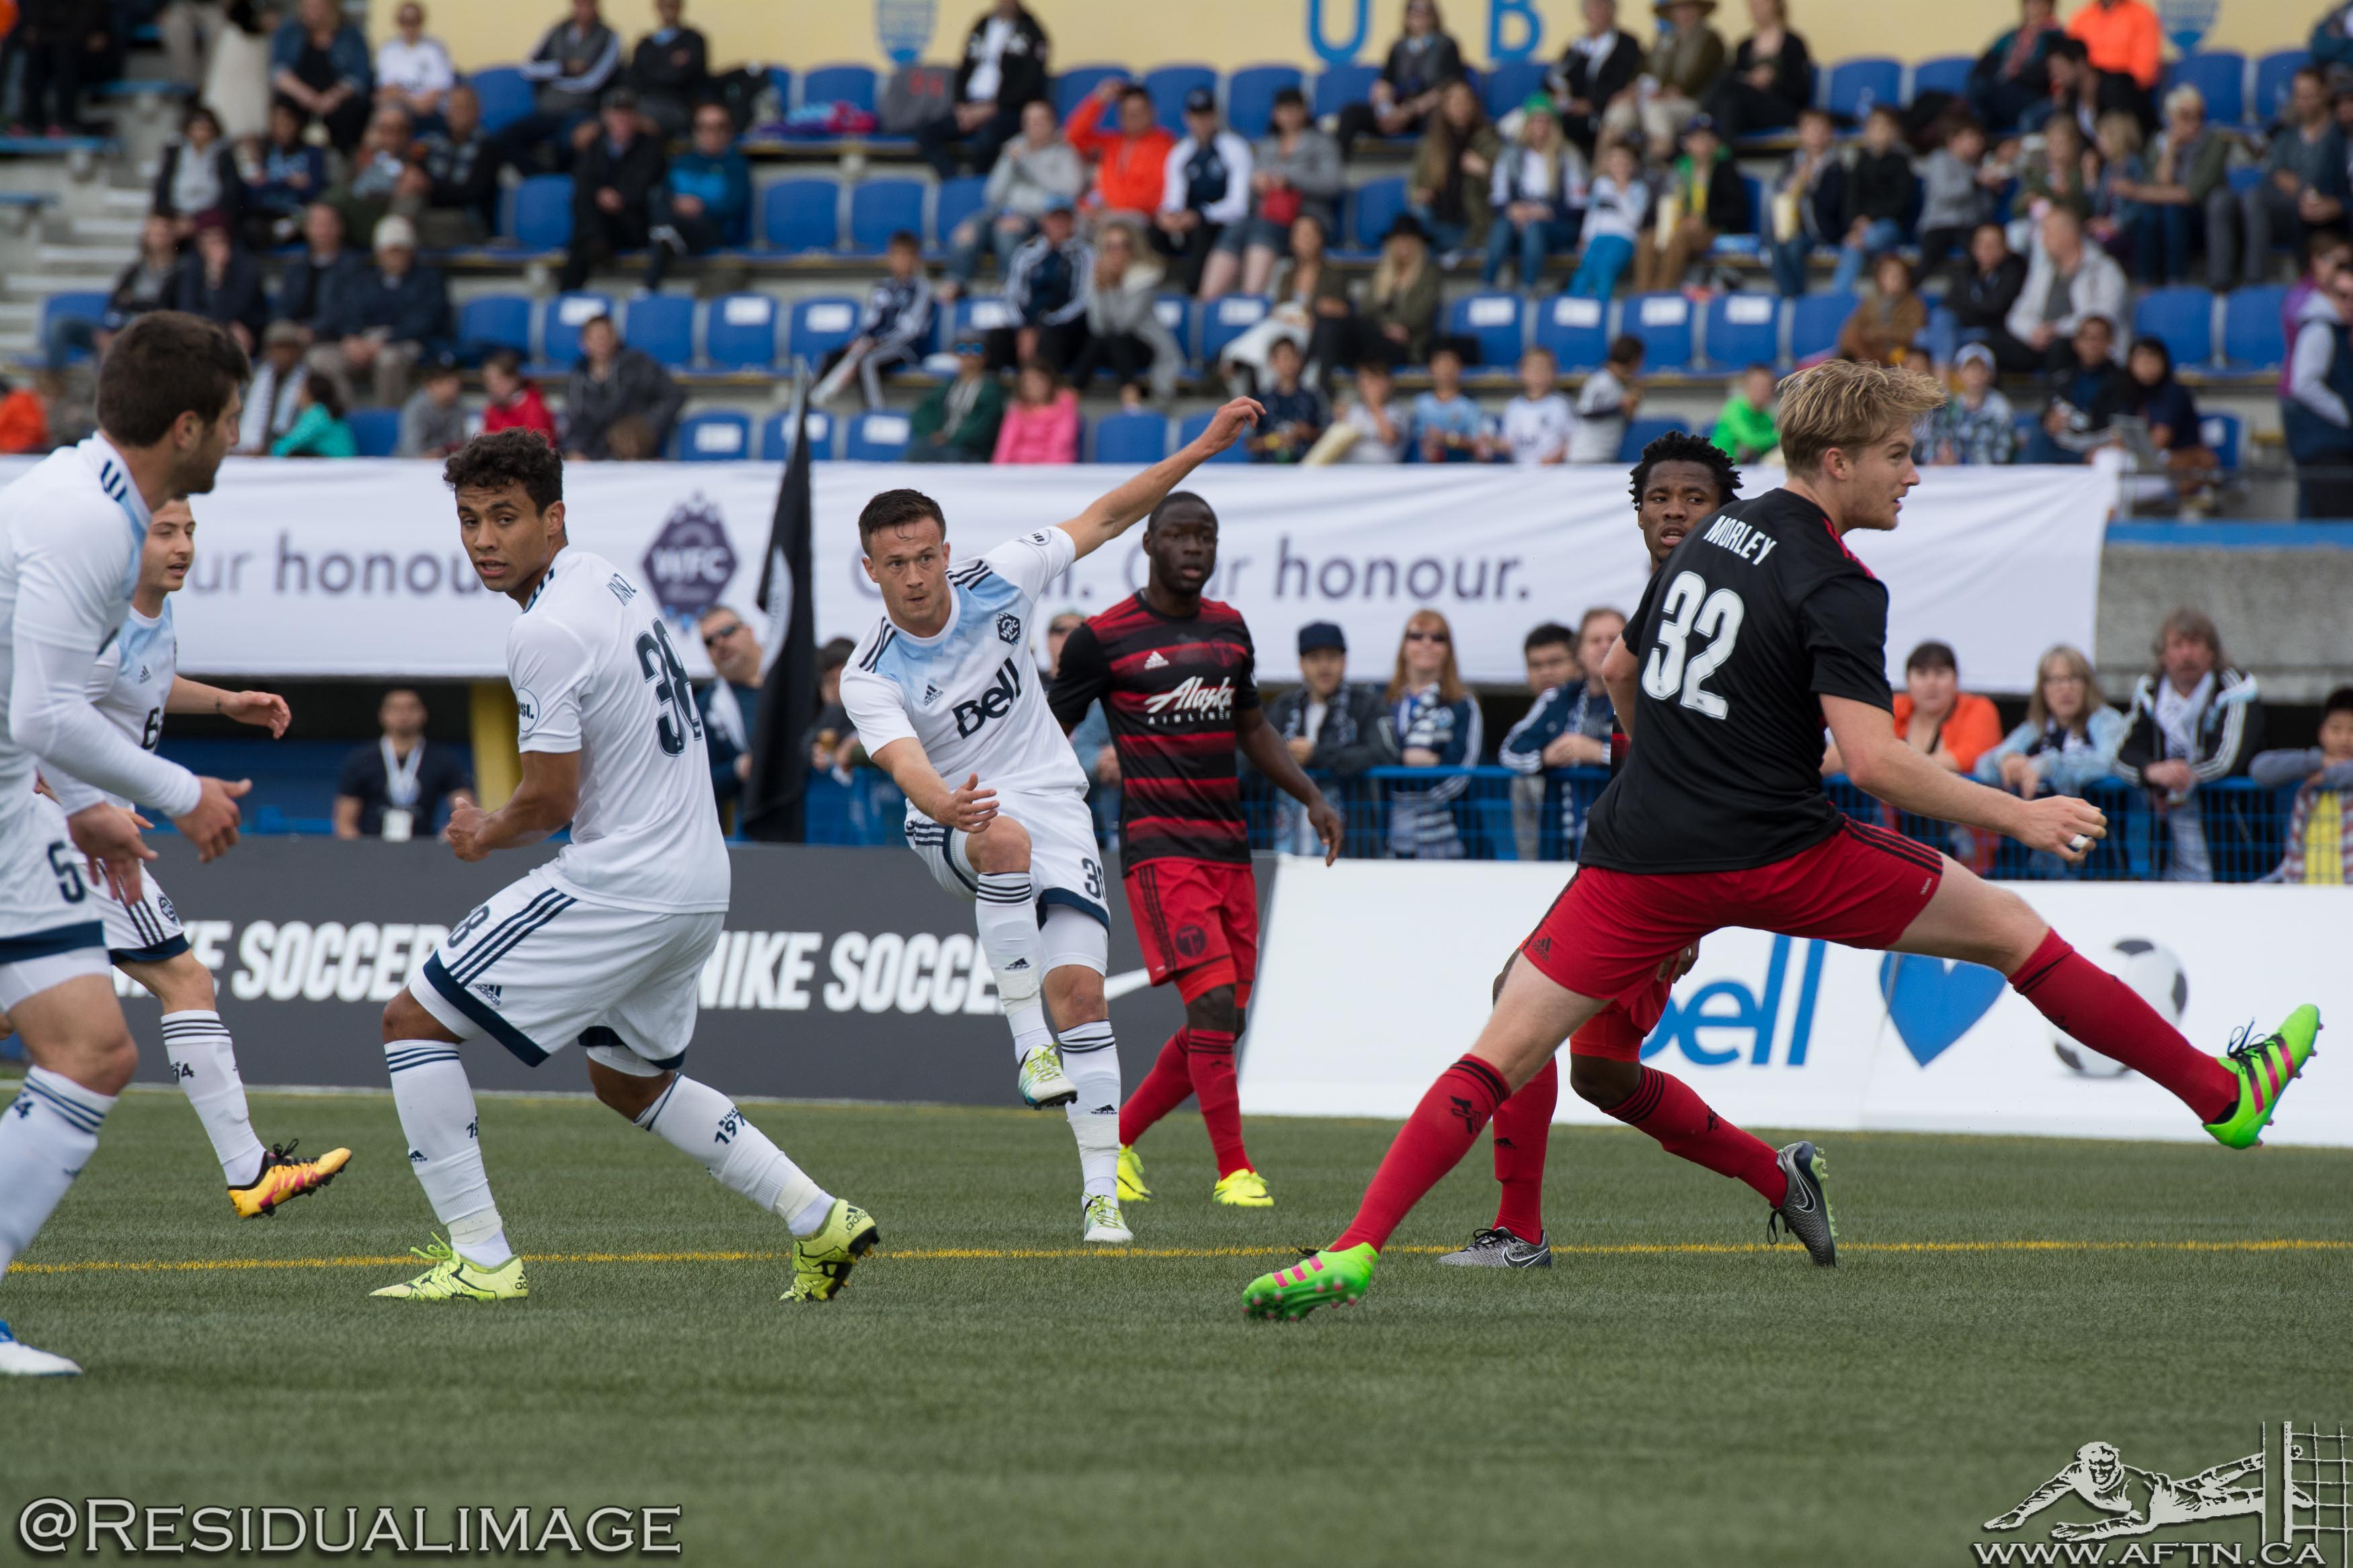 WFC2 v Timbers 2 - June 2016 (19)